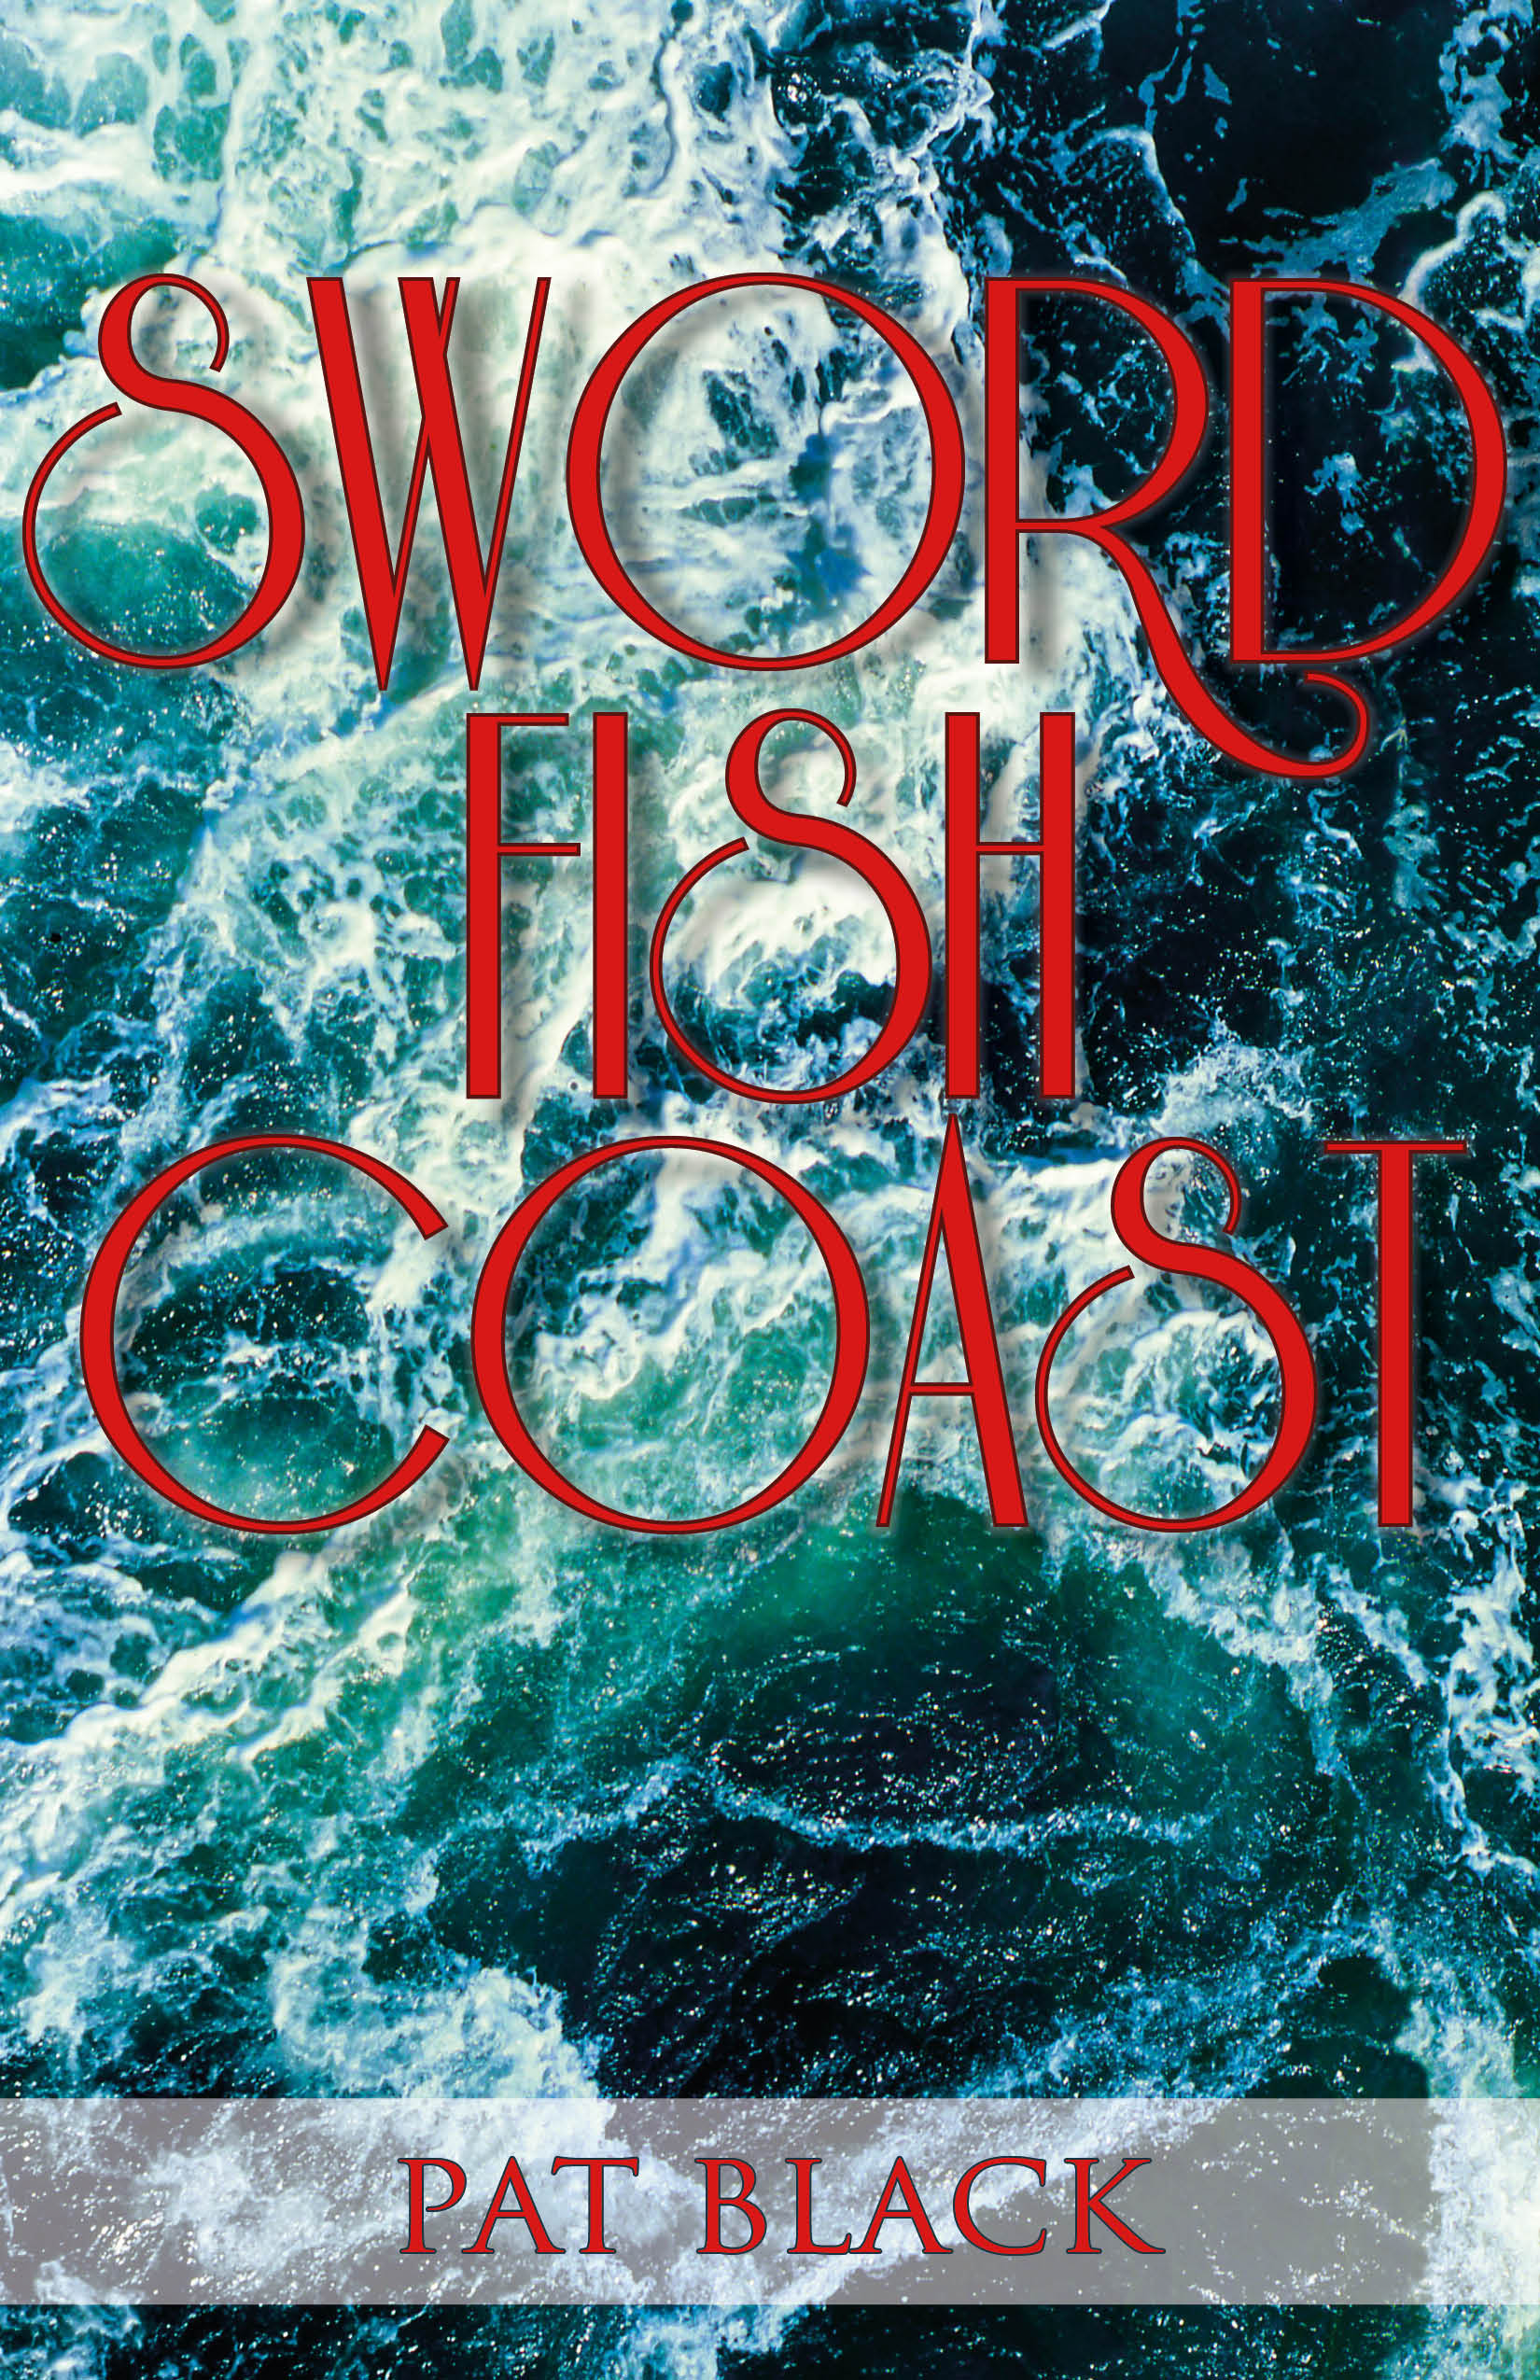 Sword Fish Coast - Pat Black